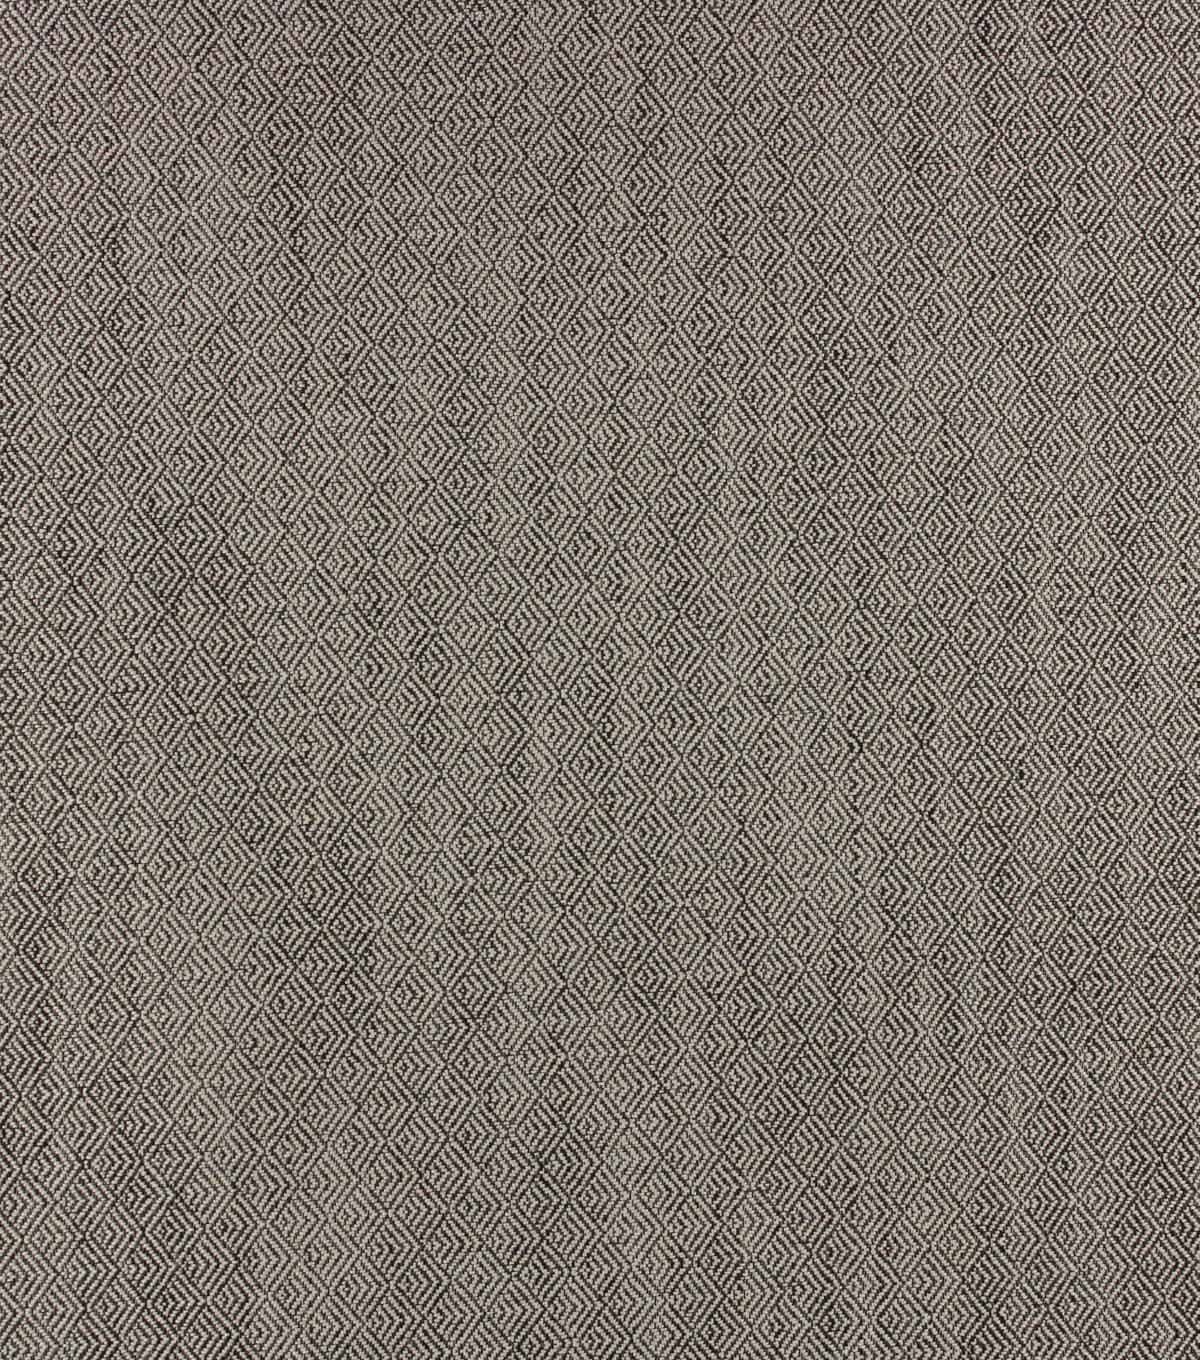 Hudson 43 Multi-Purpose Decor Fabric 60\u0027\u0027-Granite Tanja